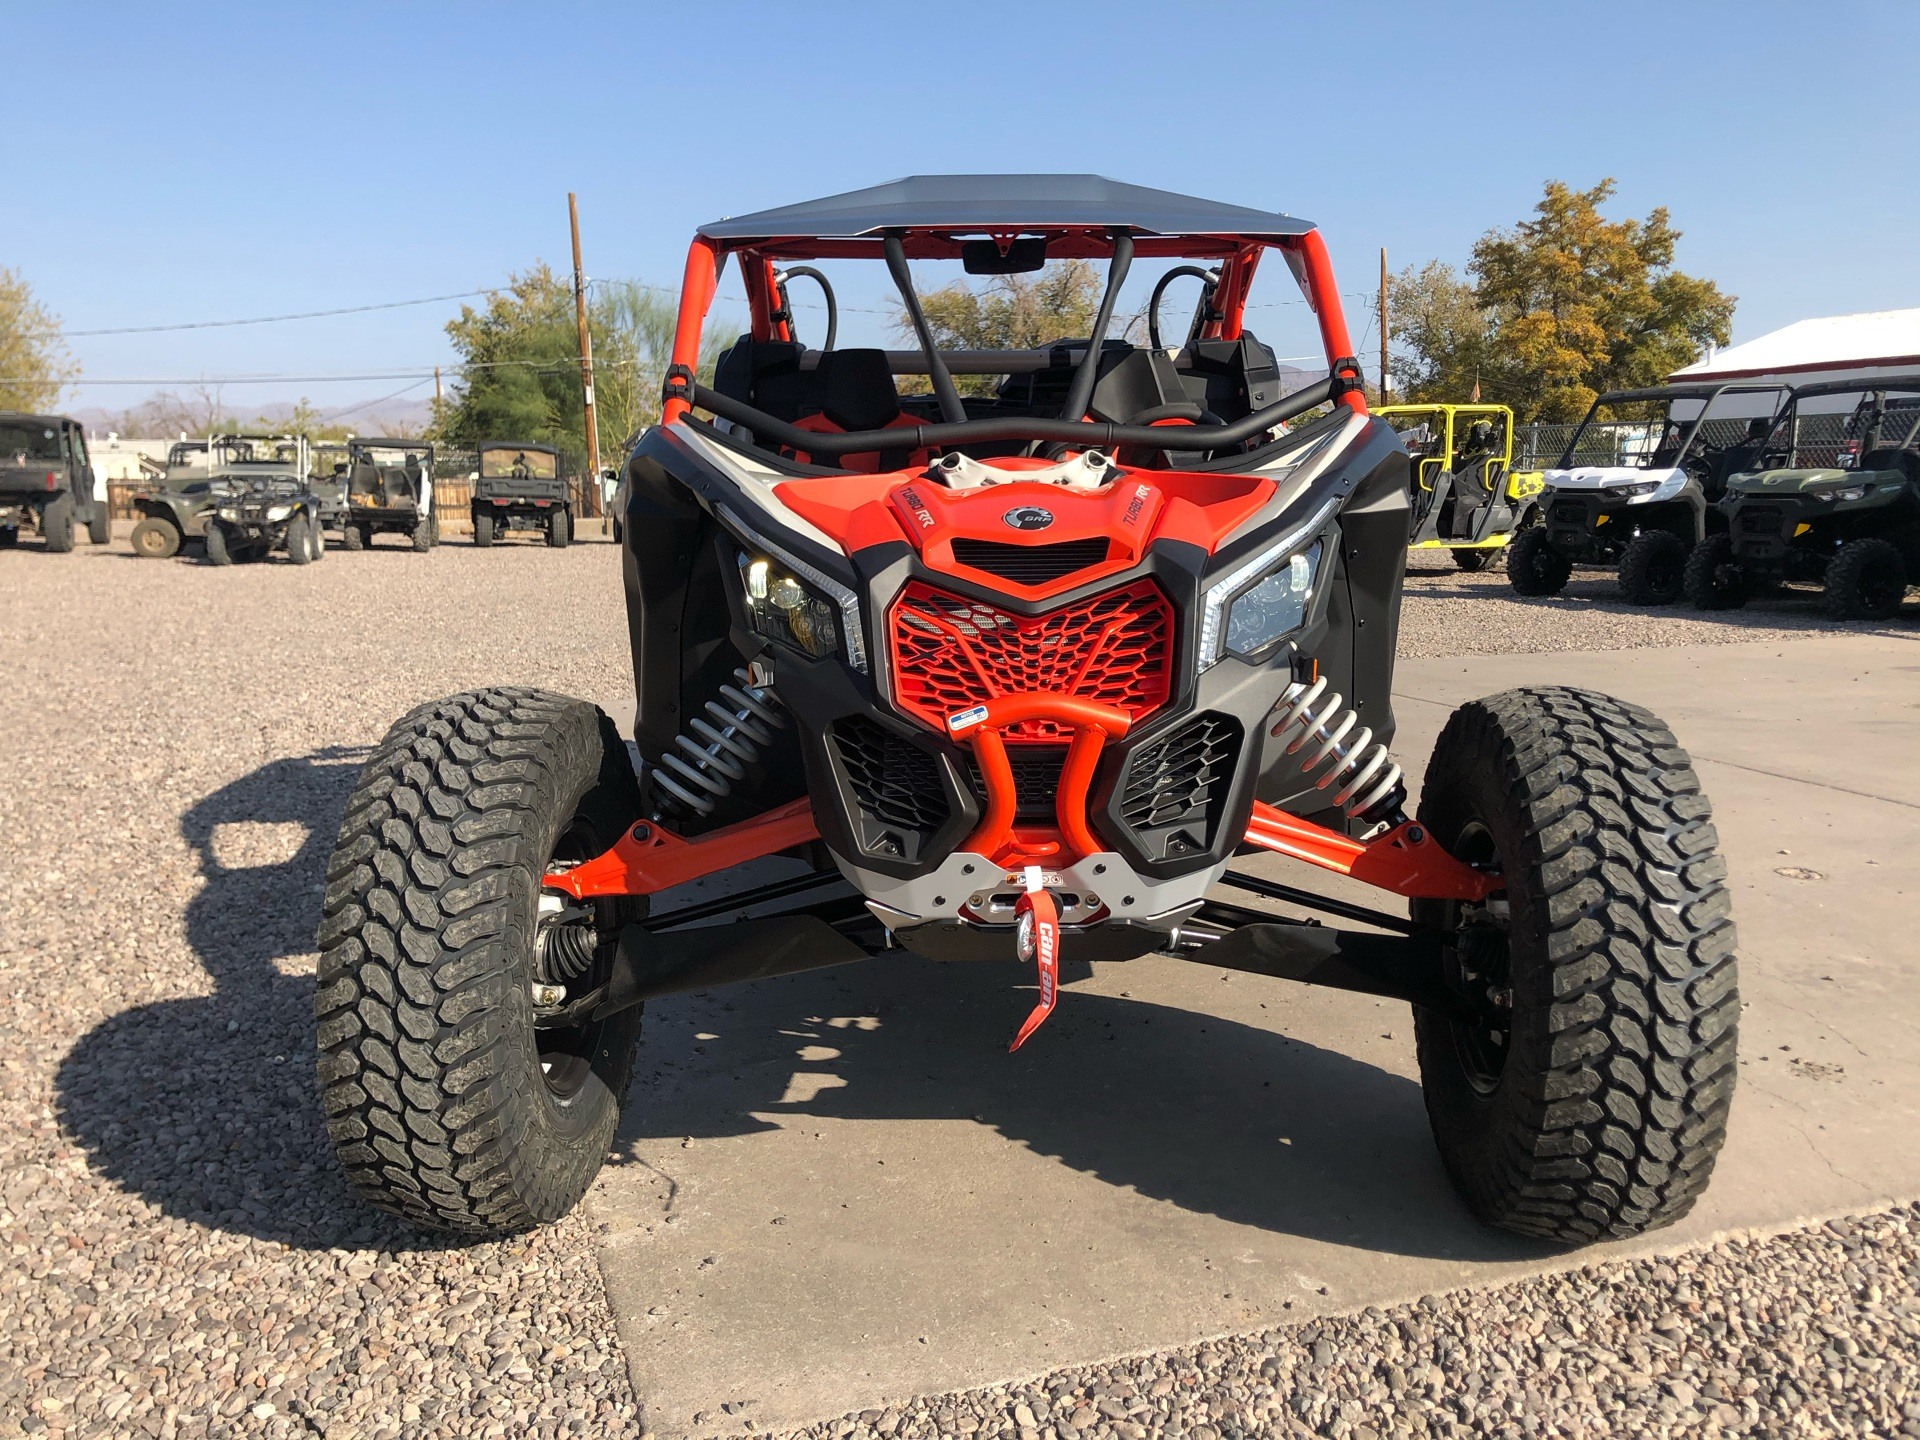 2021 Can-Am Maverick X3 X RC Turbo RR in Safford, Arizona - Photo 2